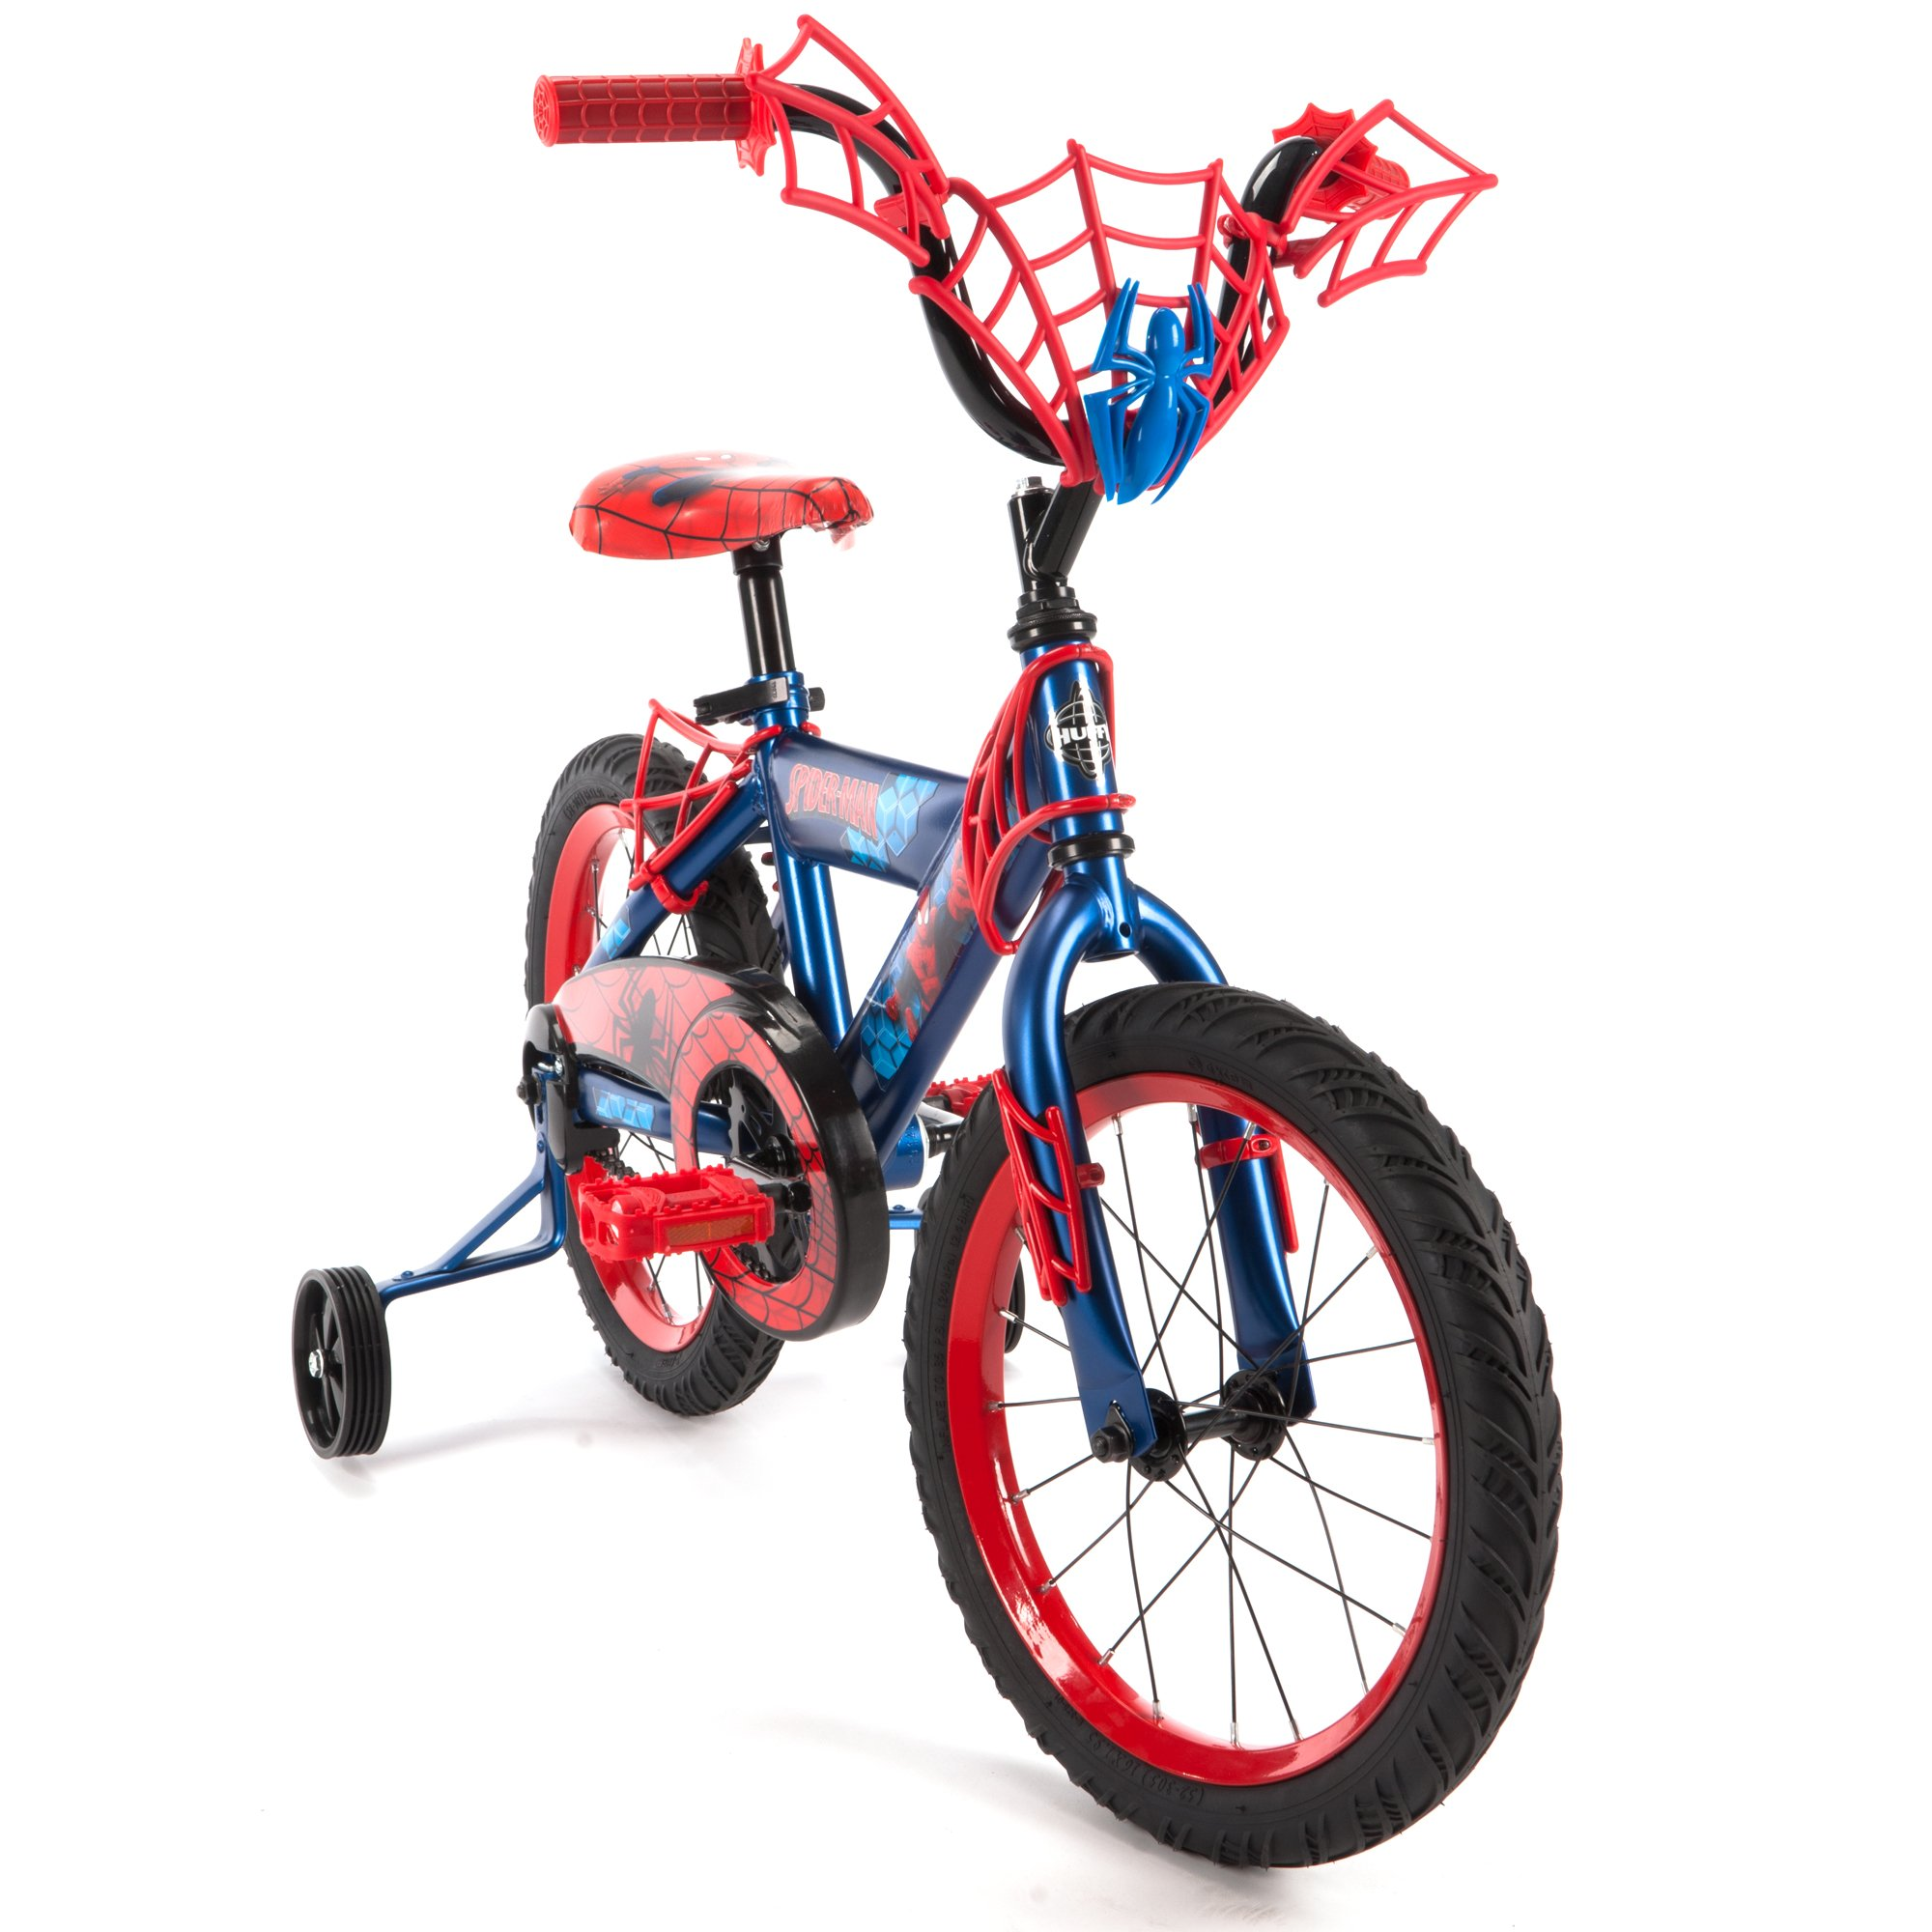 16'' Marvel Spider-Man Bike by Huffy, Ages 4-6, Height 42-48'' by Huffy (Image #2)